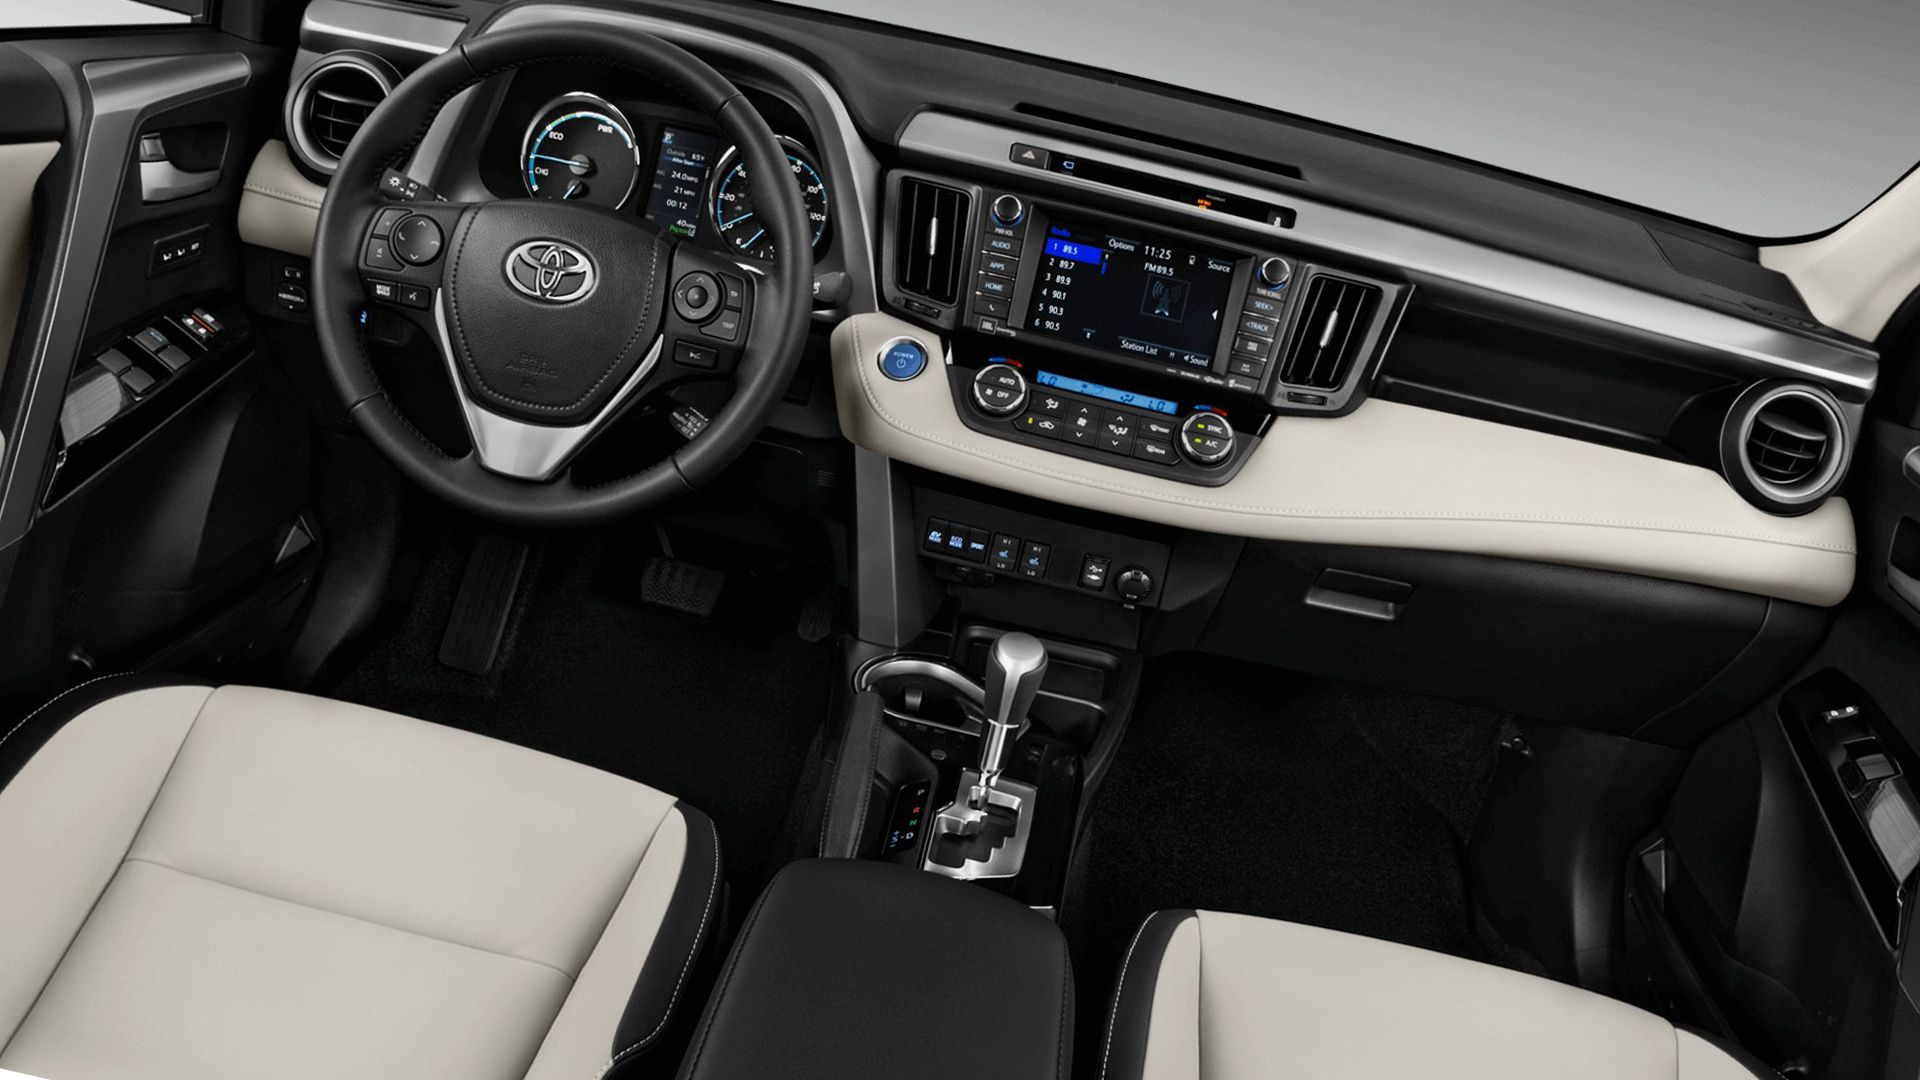 New 2019 Toyota Rav4 Hybrid Interior Design Riding Pretty